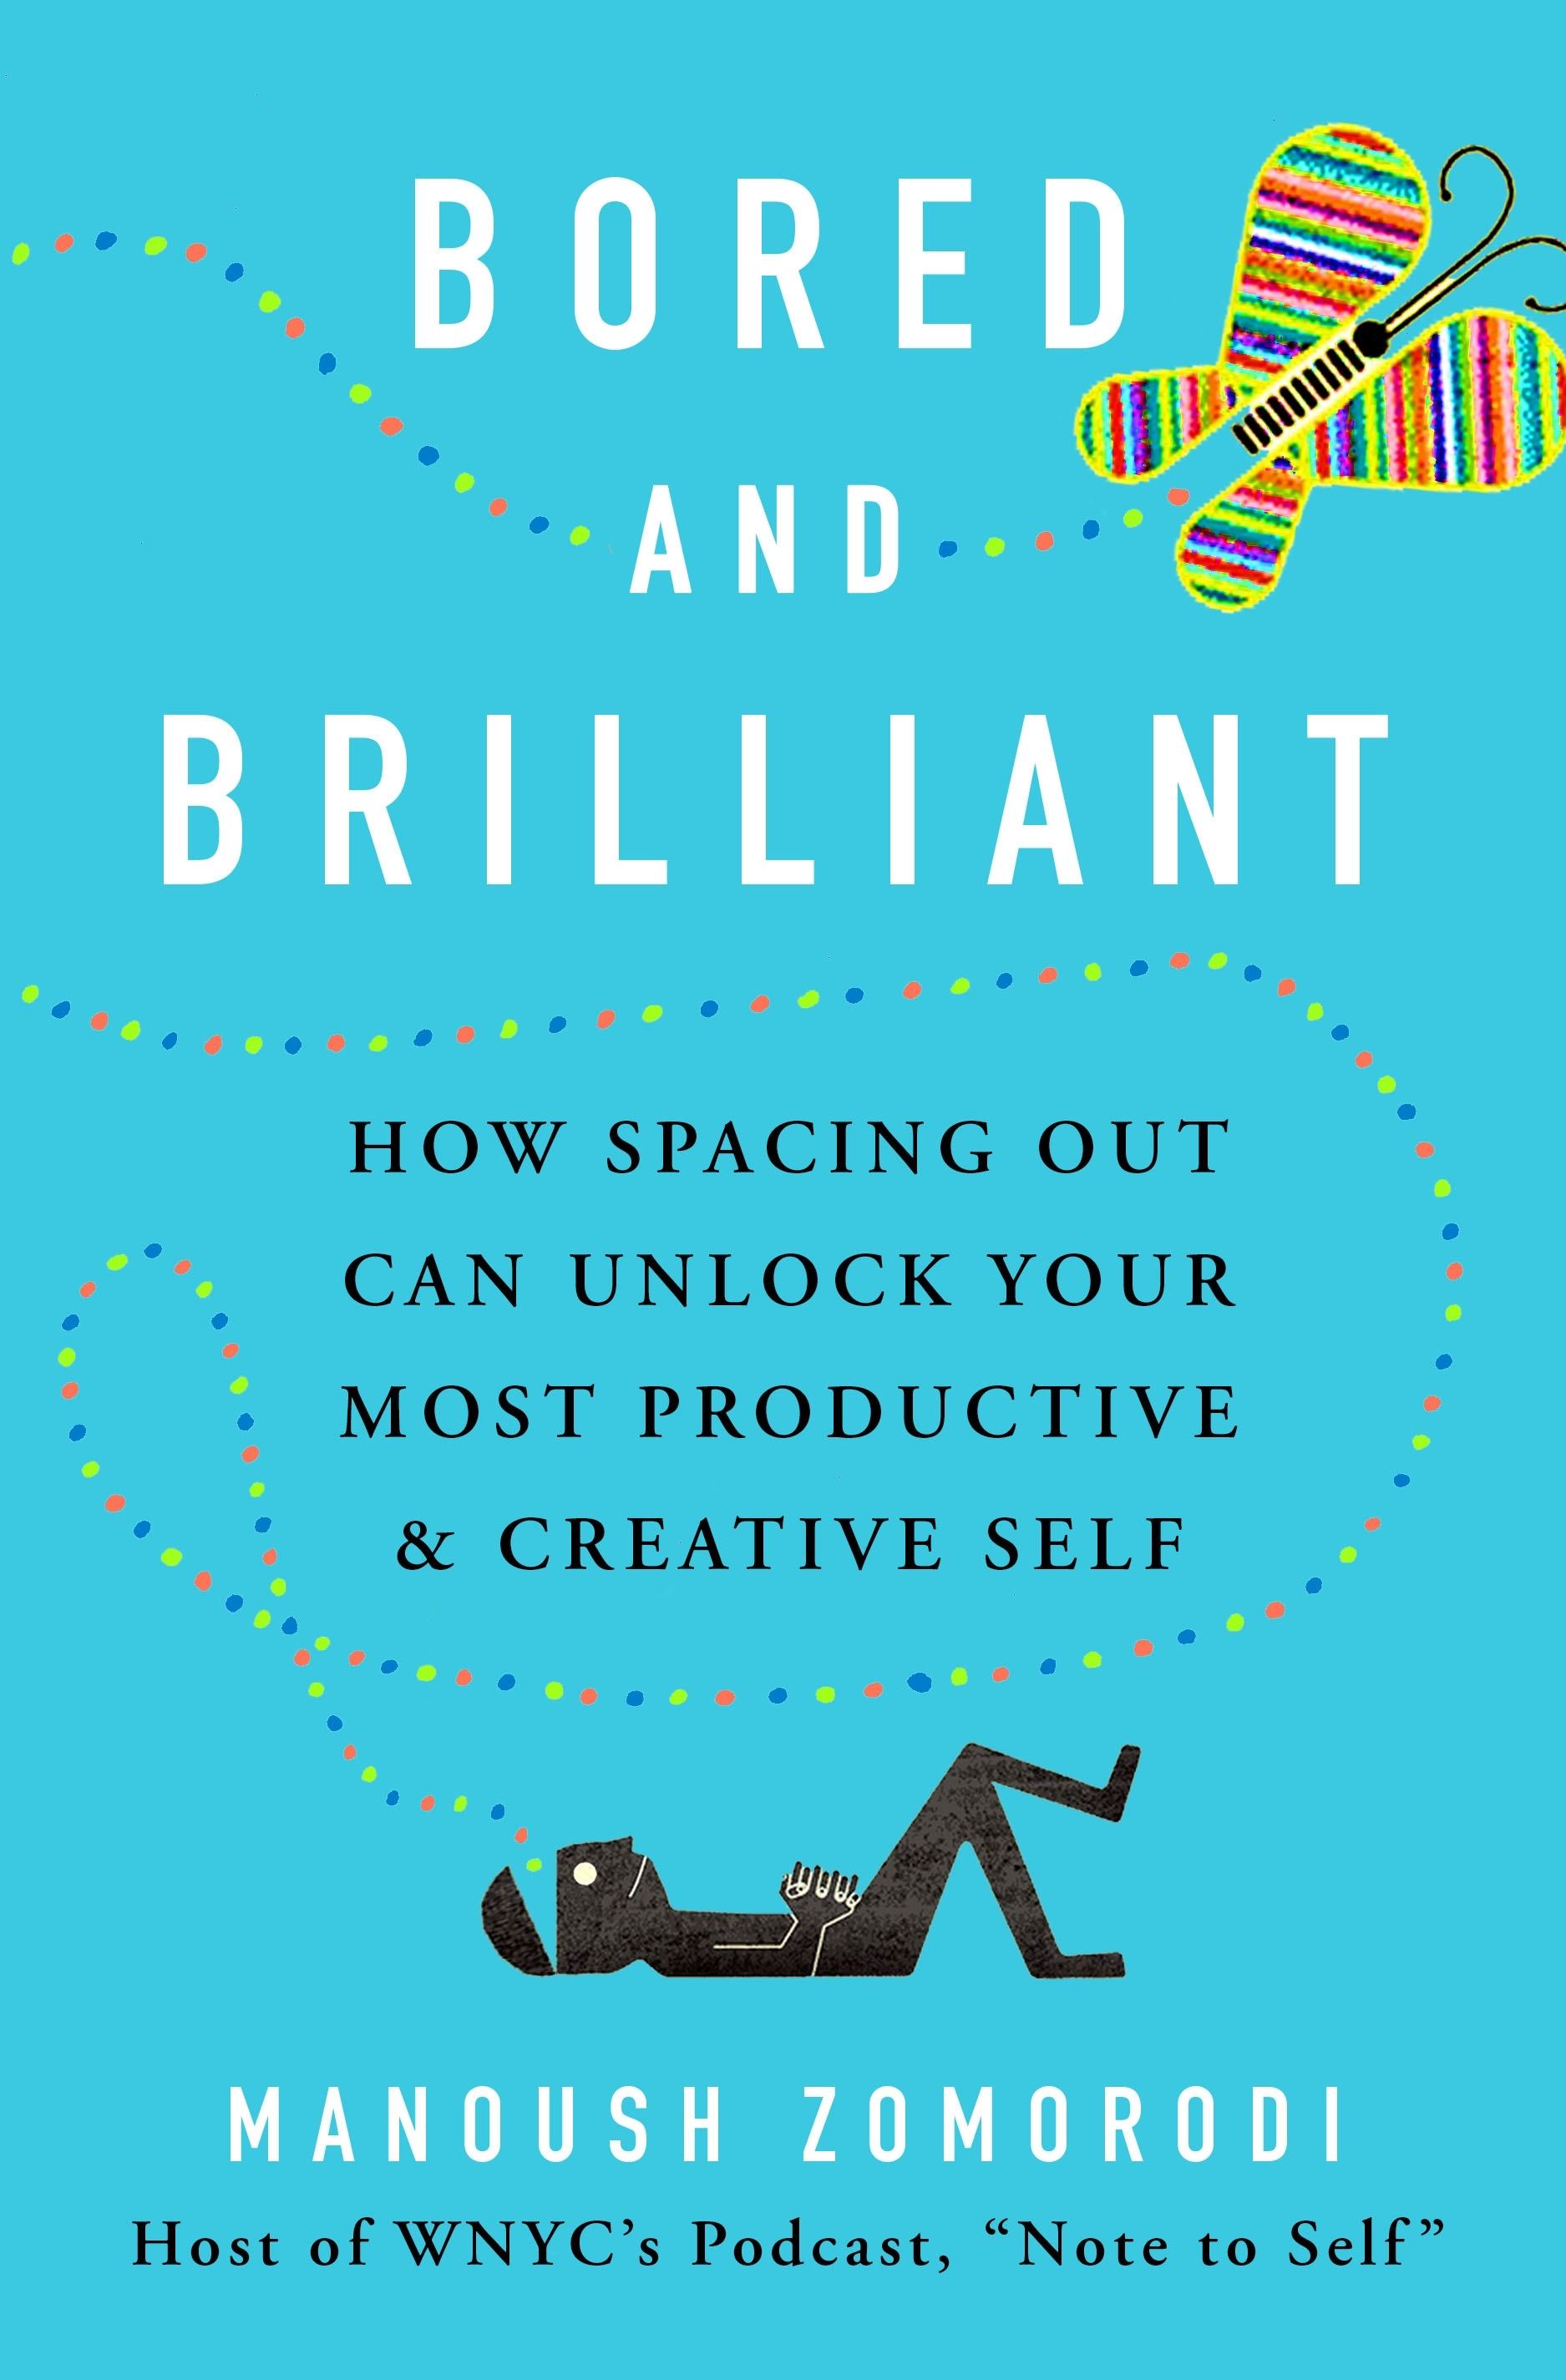 Bored and Brilliant How Spacing Out Can Unlock Your Most Productive and Creative Self